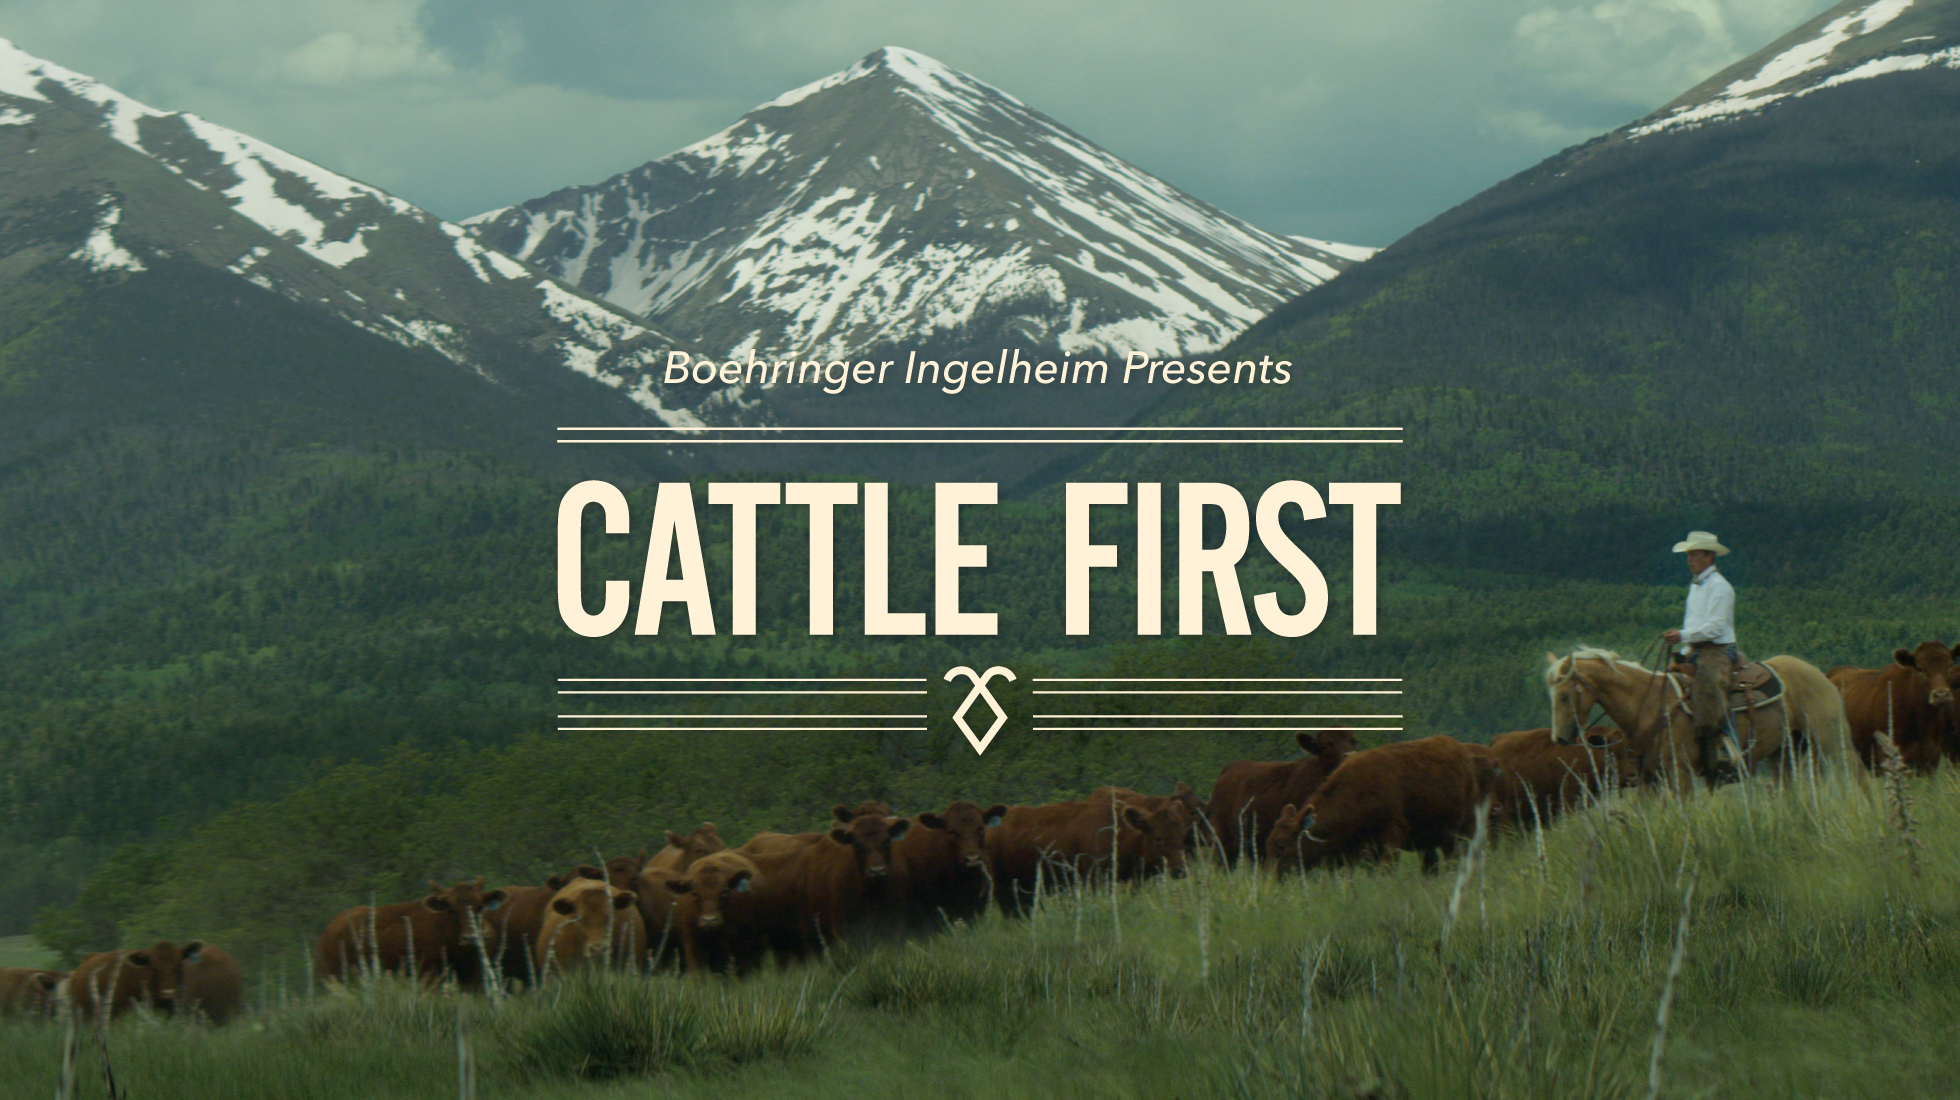 Cattle First documentary titlecard